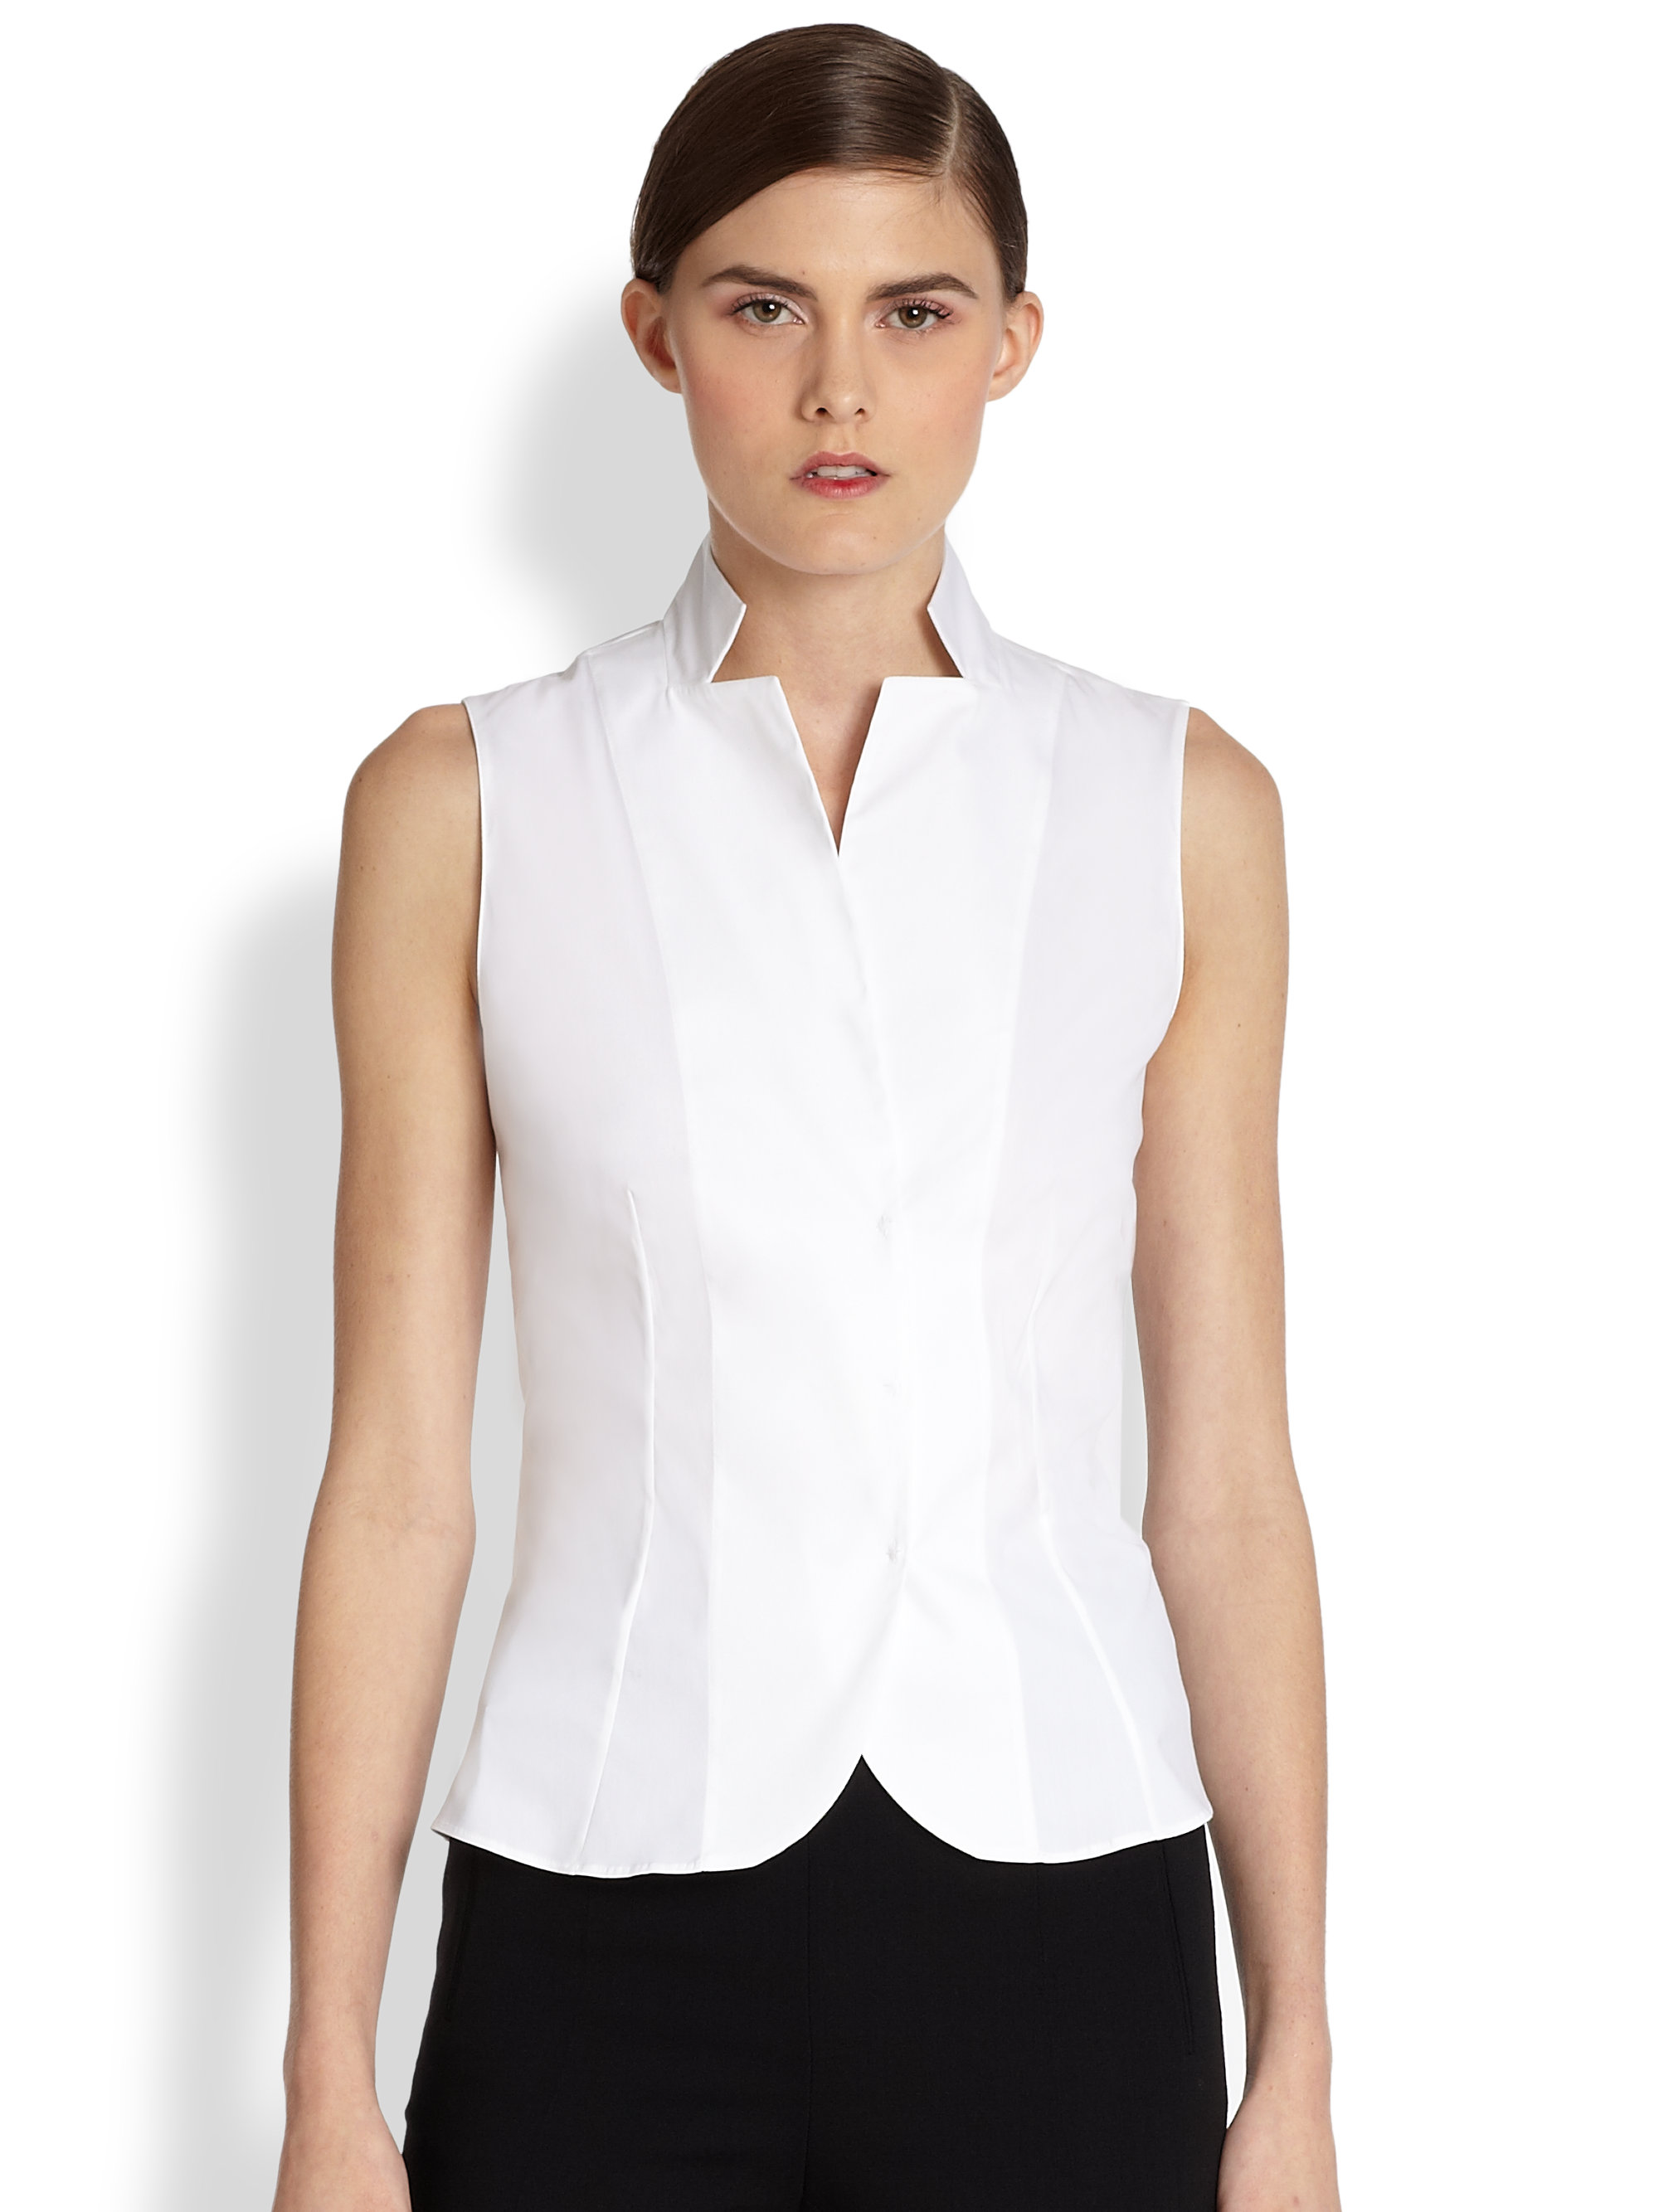 Stand Collar Blouse Designs Images : Akris architecture collection stand collar blouse in white